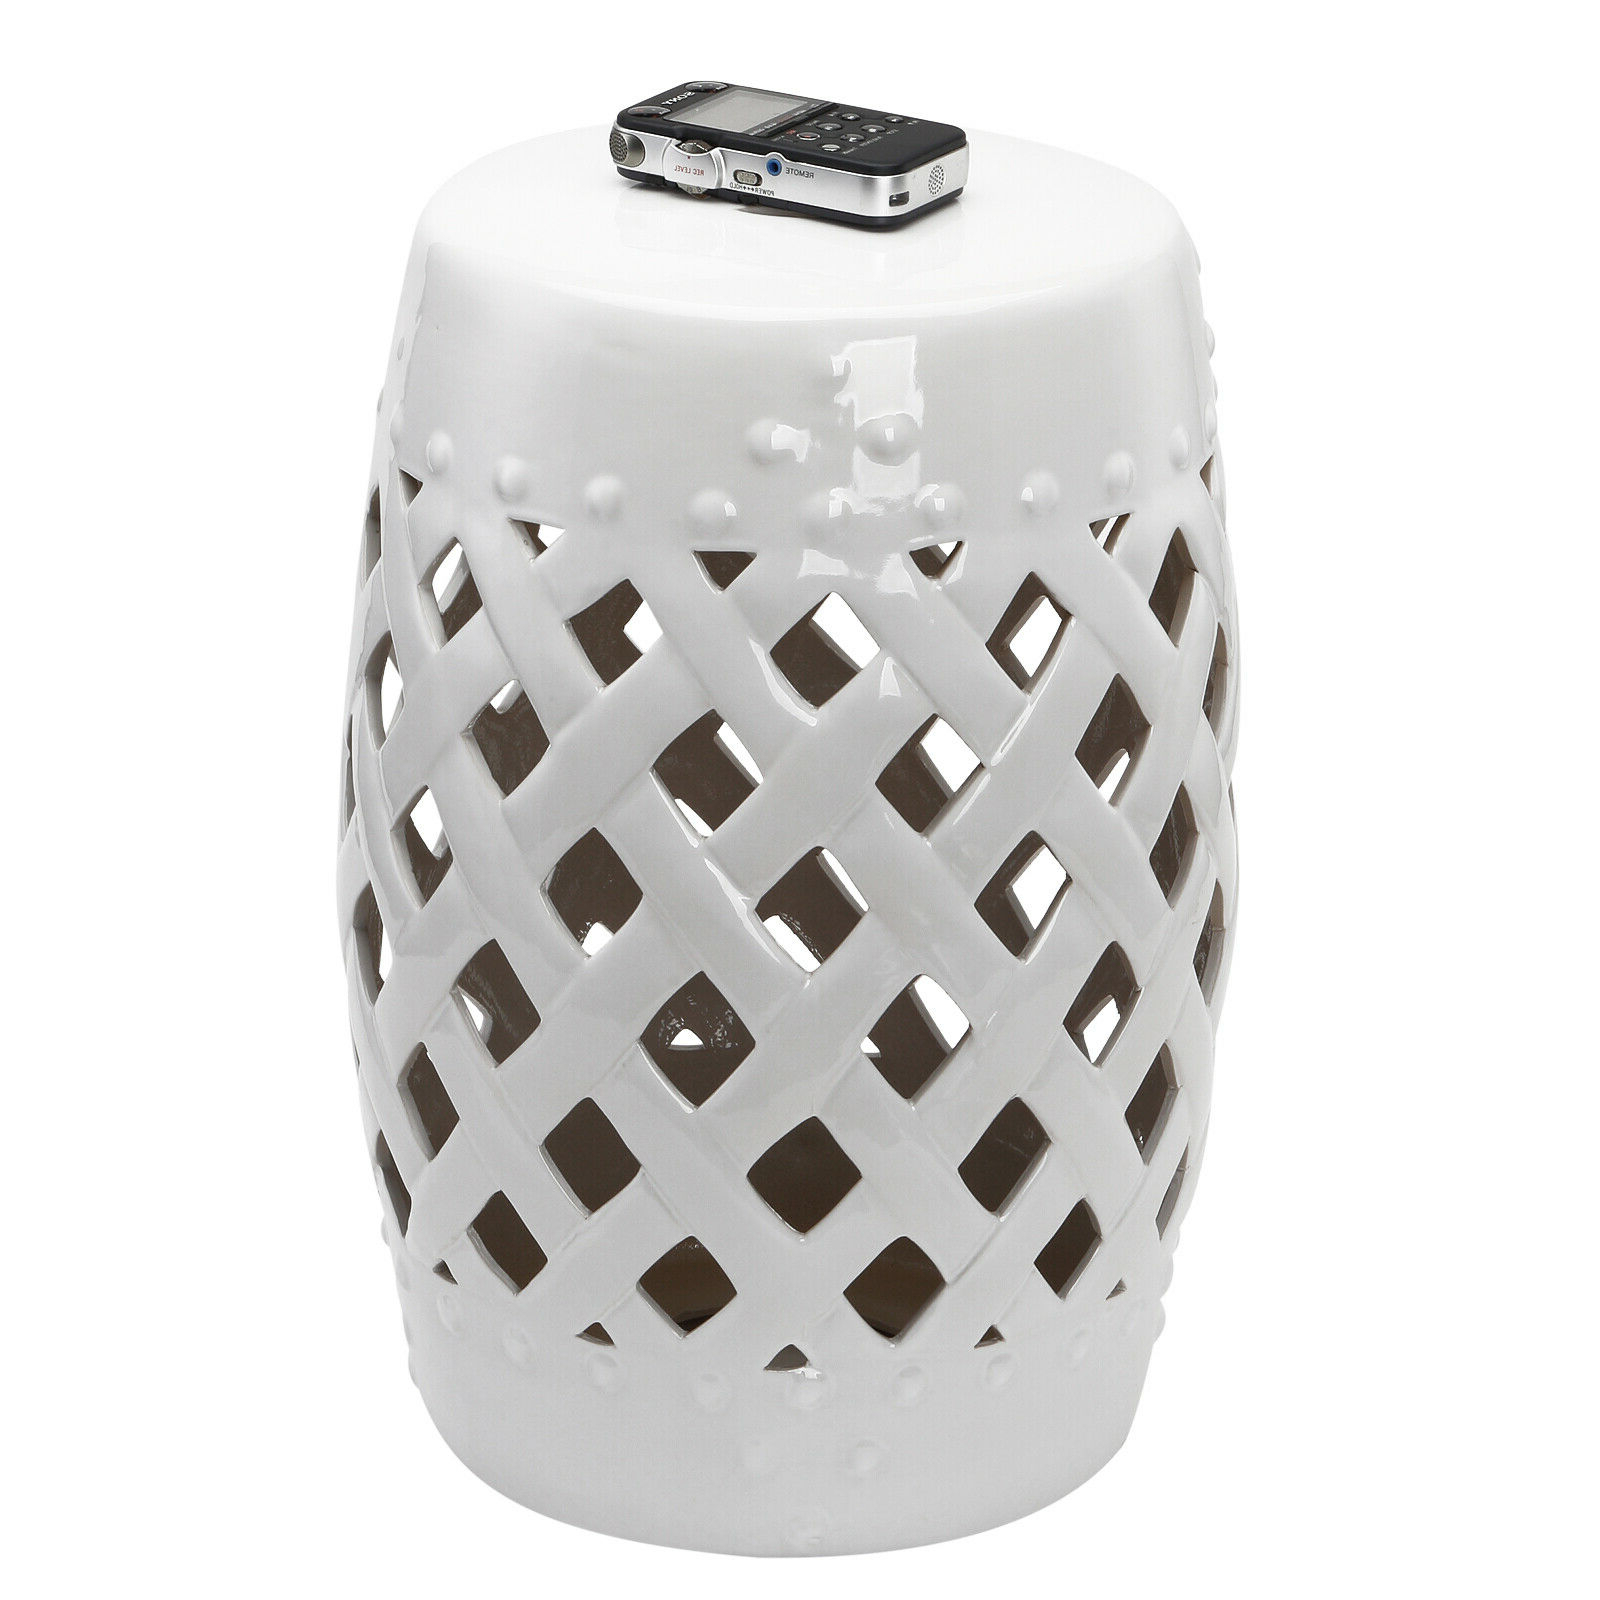 Newest Standwood Metal Garden Stools Pertaining To Outsunny Modern Ceramic Lattice Garden Stool Accent Table Decorative White (View 6 of 30)